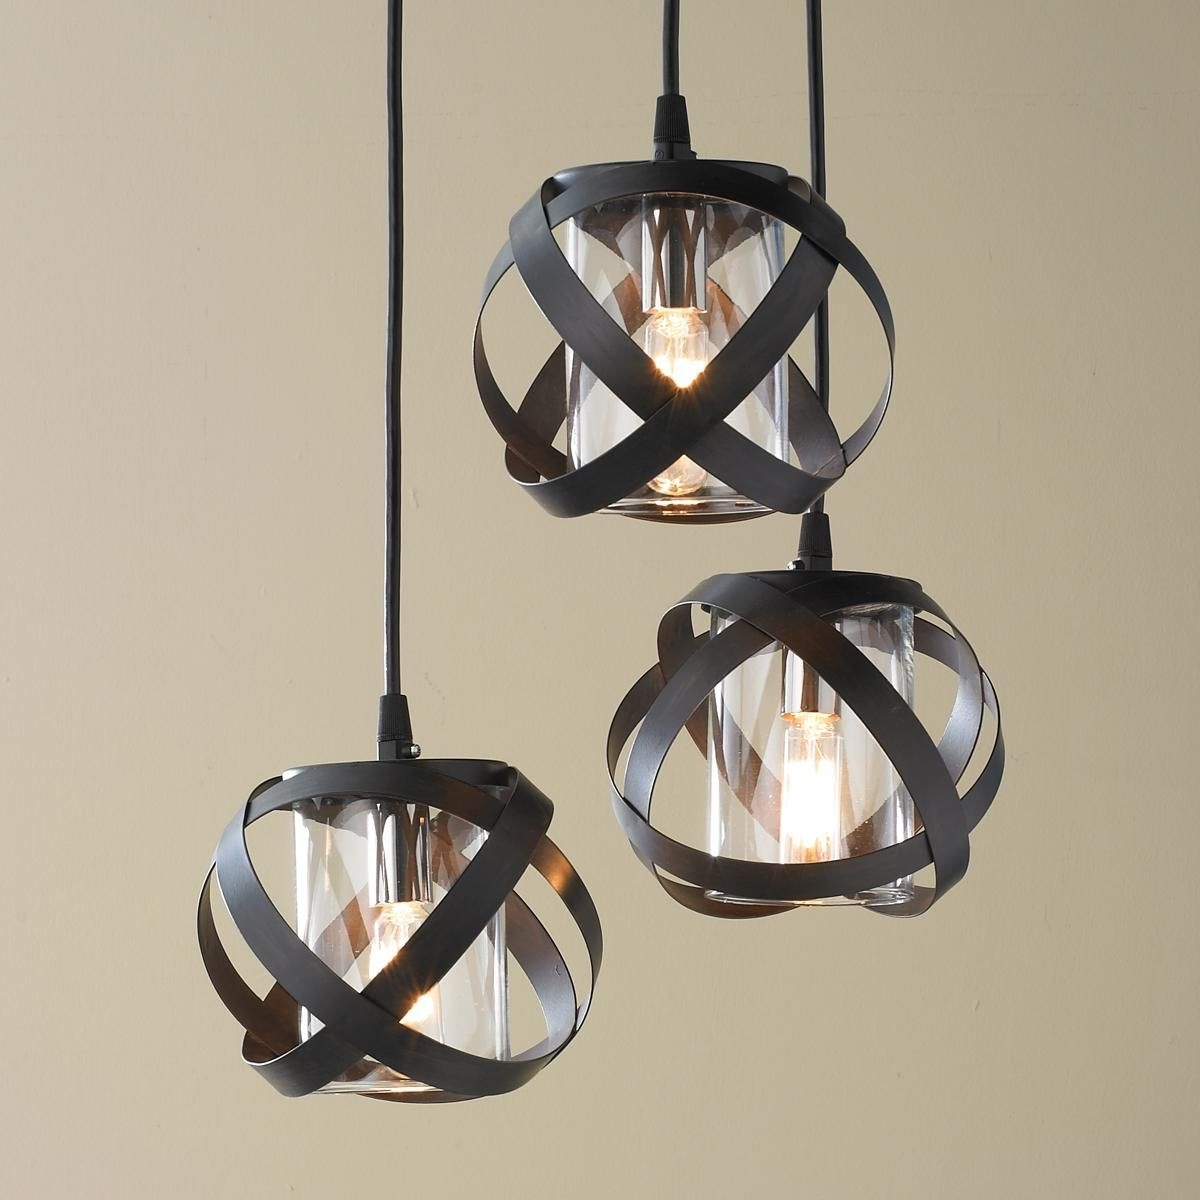 Pendant Chandelier Regarding Metal Chandeliers (View 12 of 20)